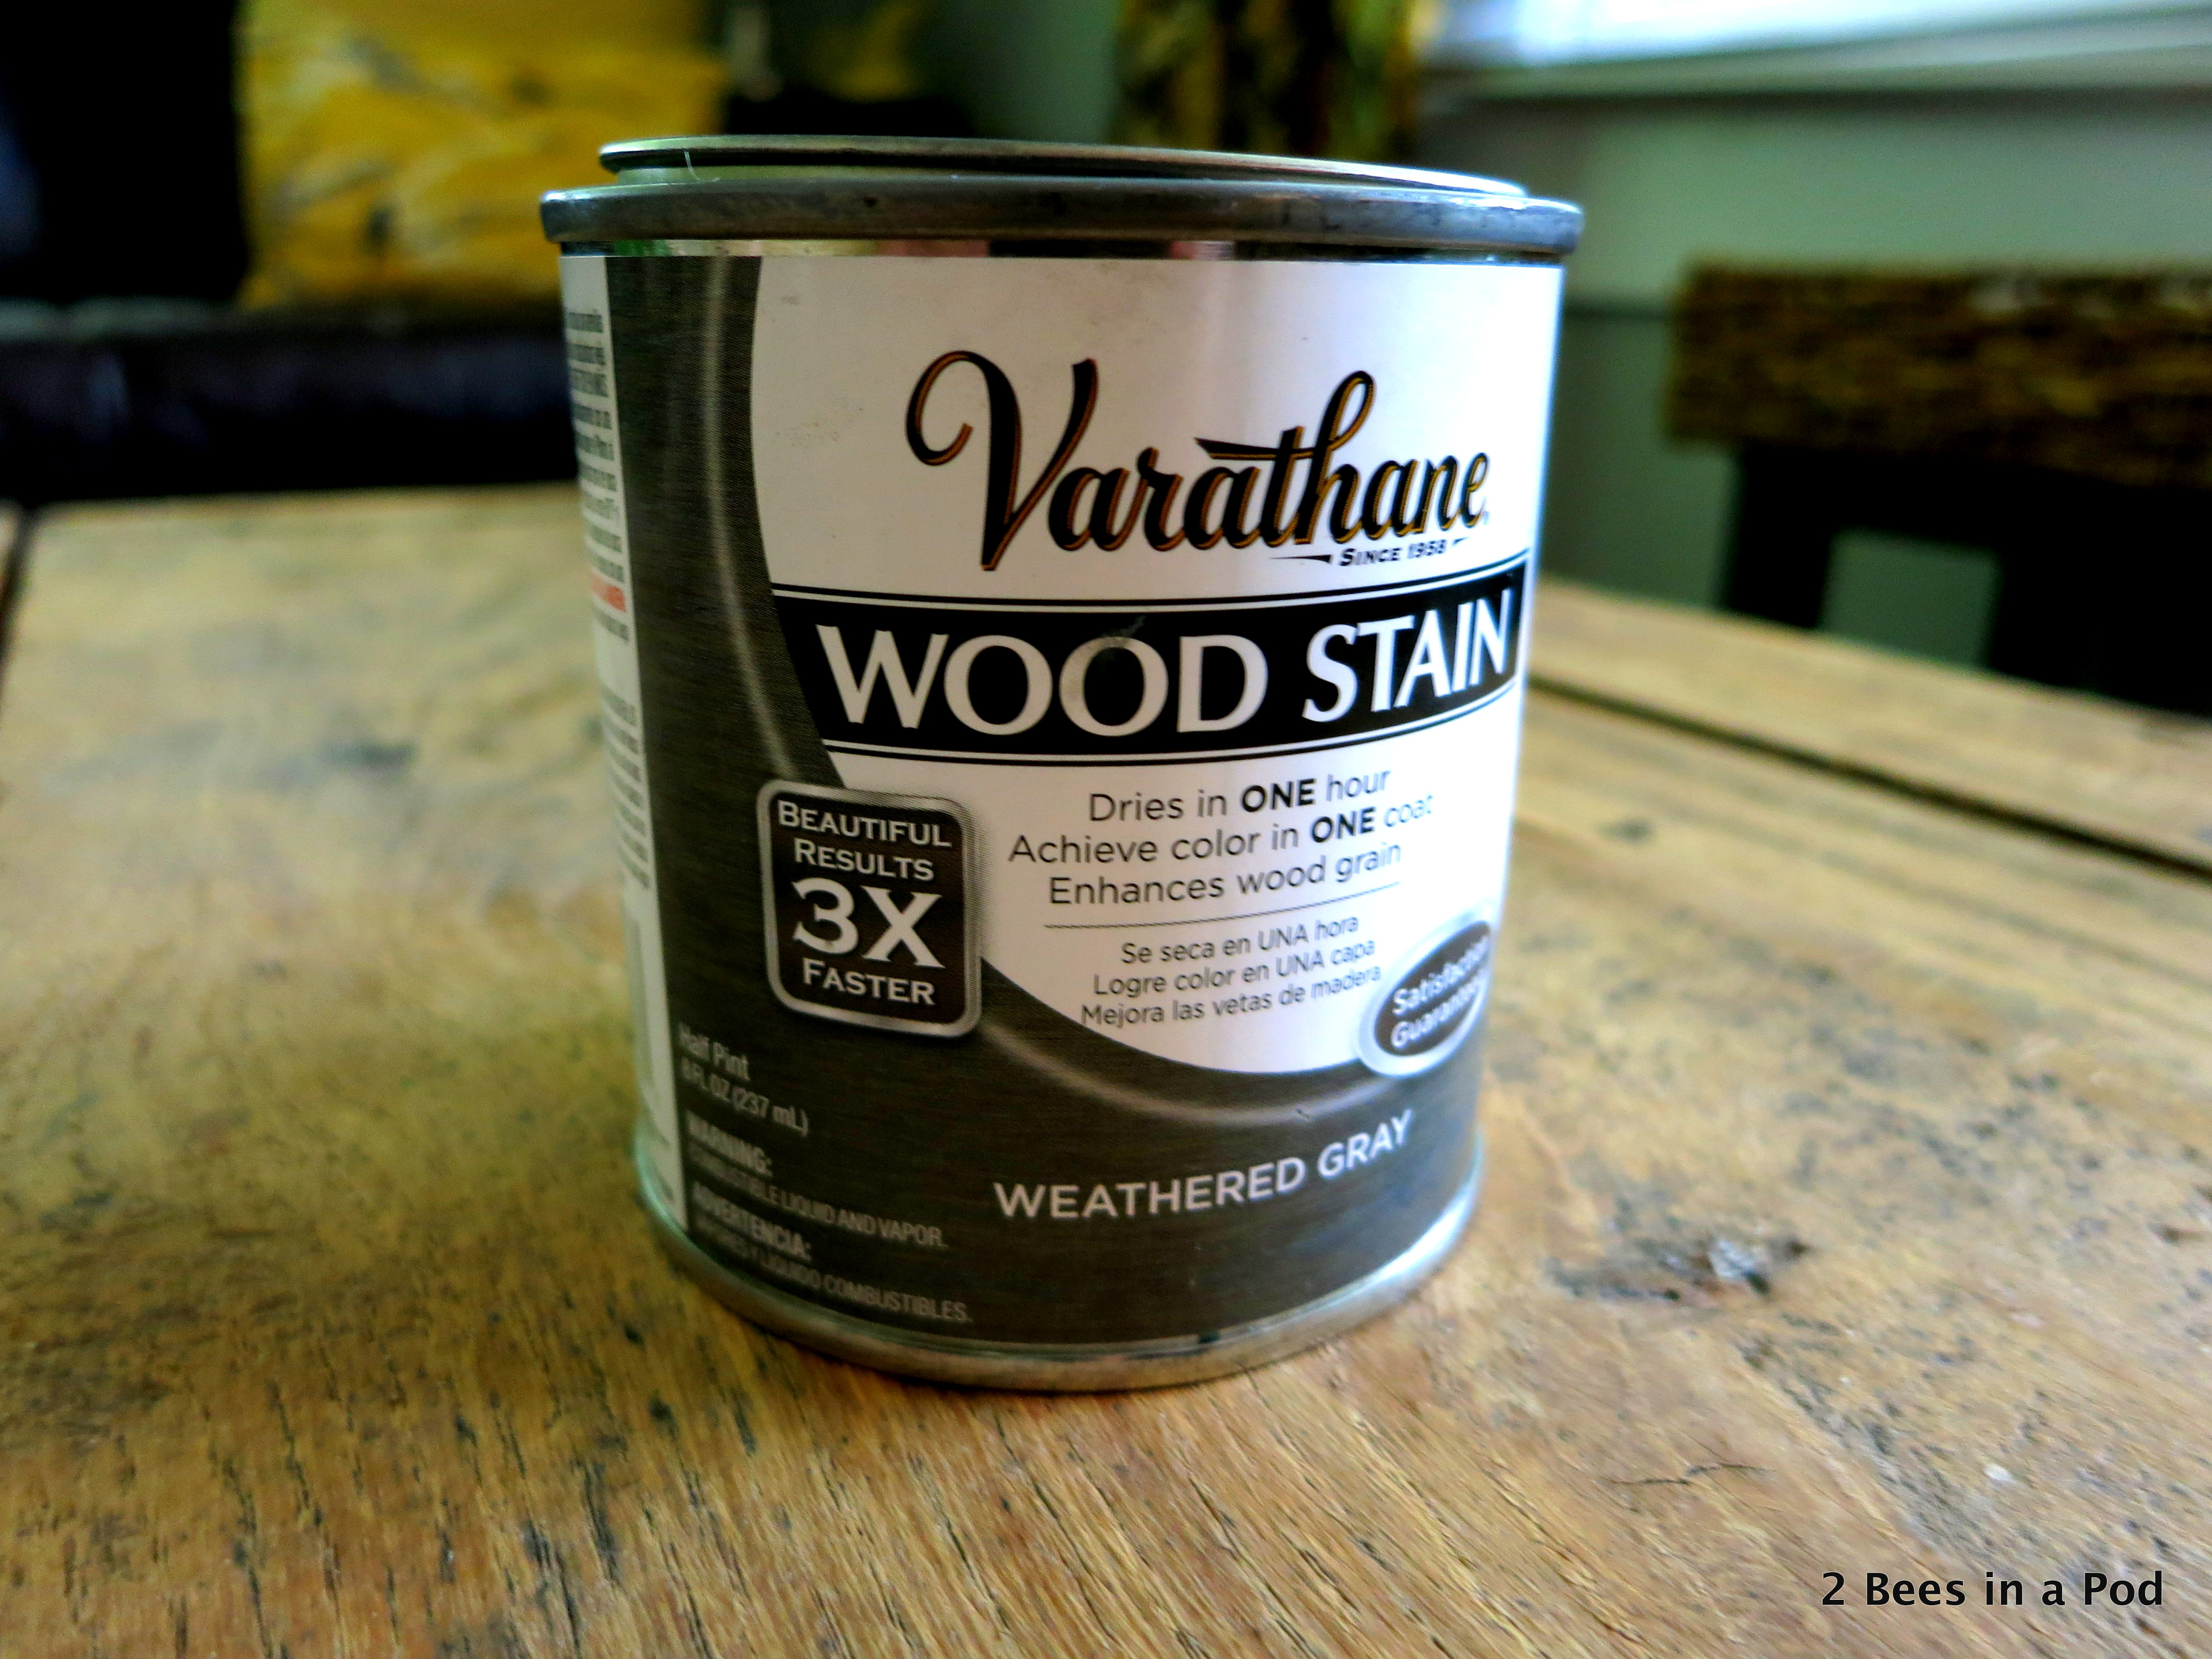 Stain by Rustoleum, Weather Grey